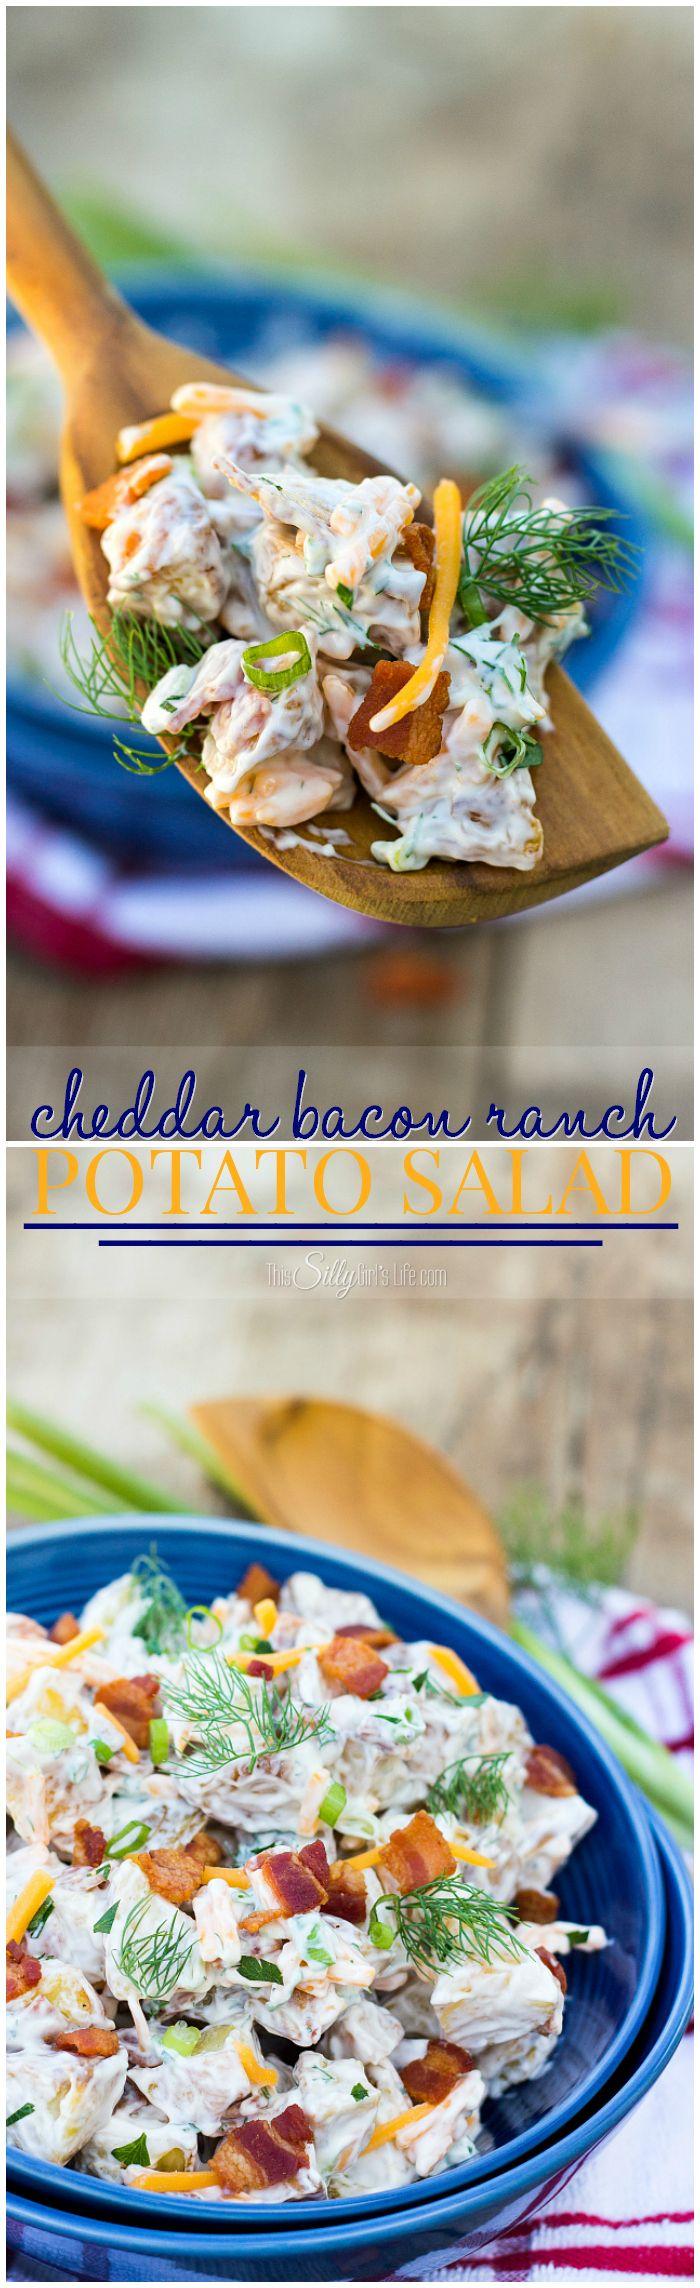 Cheddar Bacon Ranch Potato Salad, the name says it all, roasted potatoes combined in a creamy dressing with fresh dill and scallions! -- ThisSillyGirlsLife.com #sponsored  #boldbacon @walmart @wrightbrand